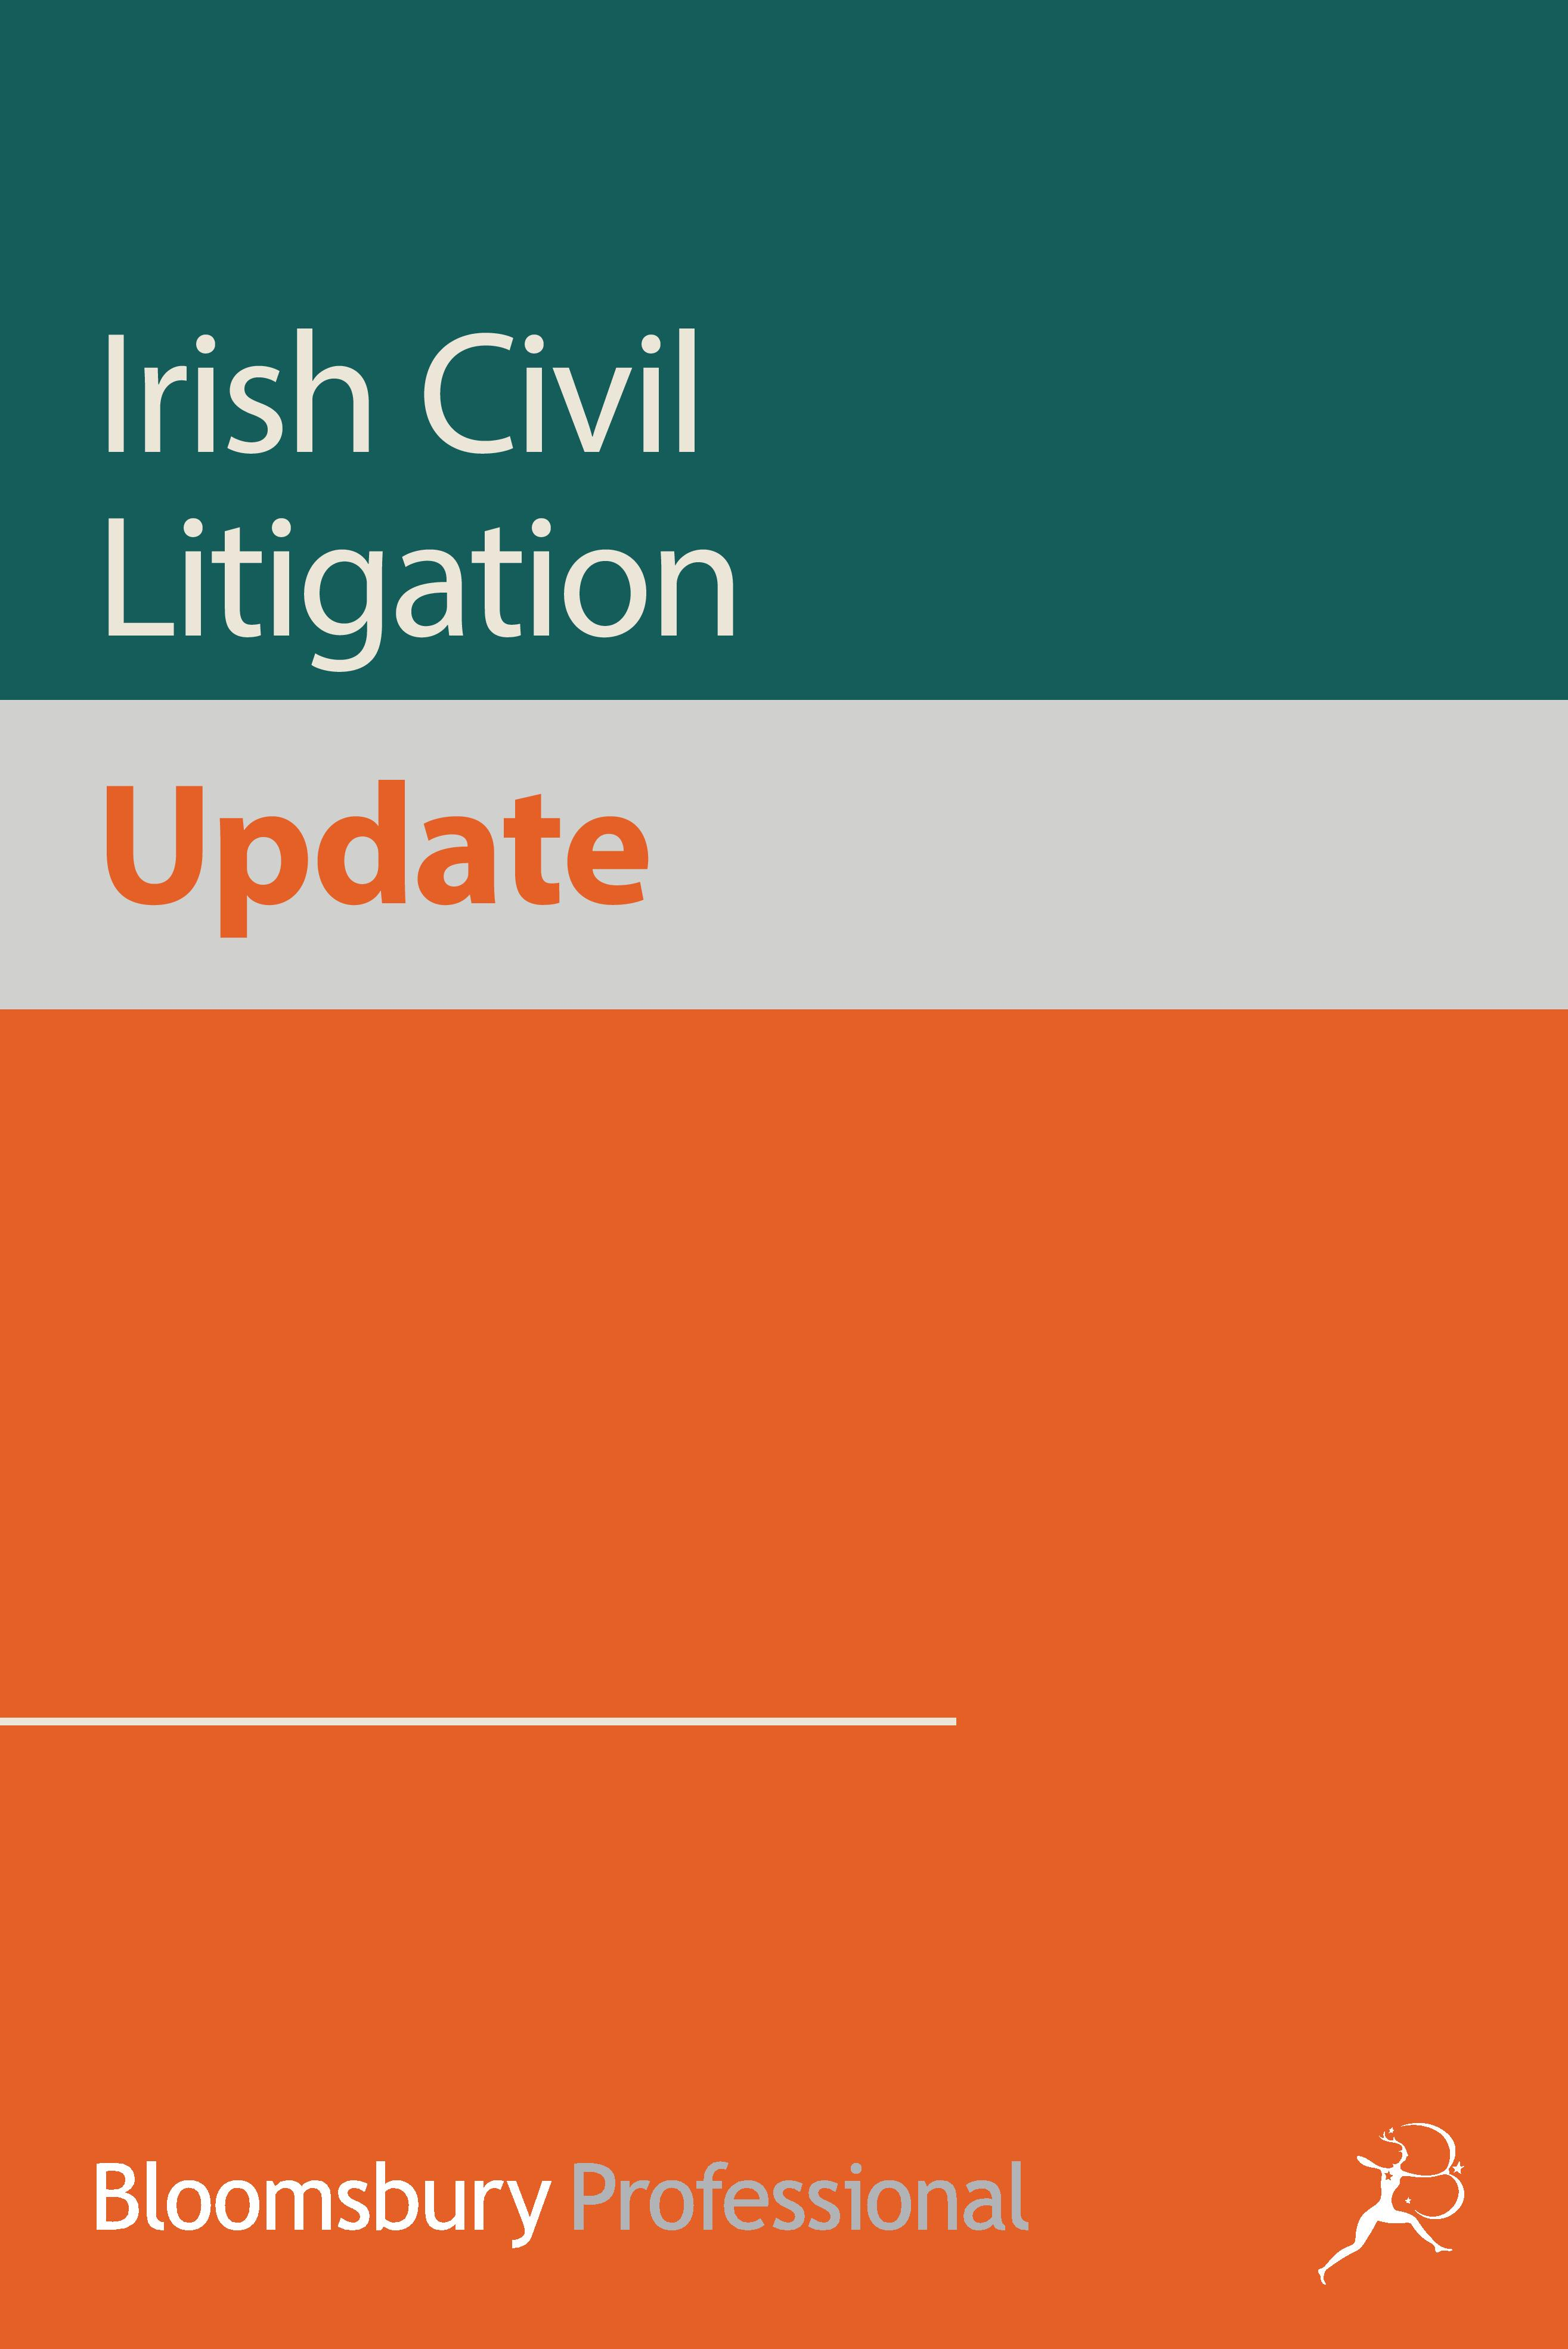 Irish Civil Litigation Update